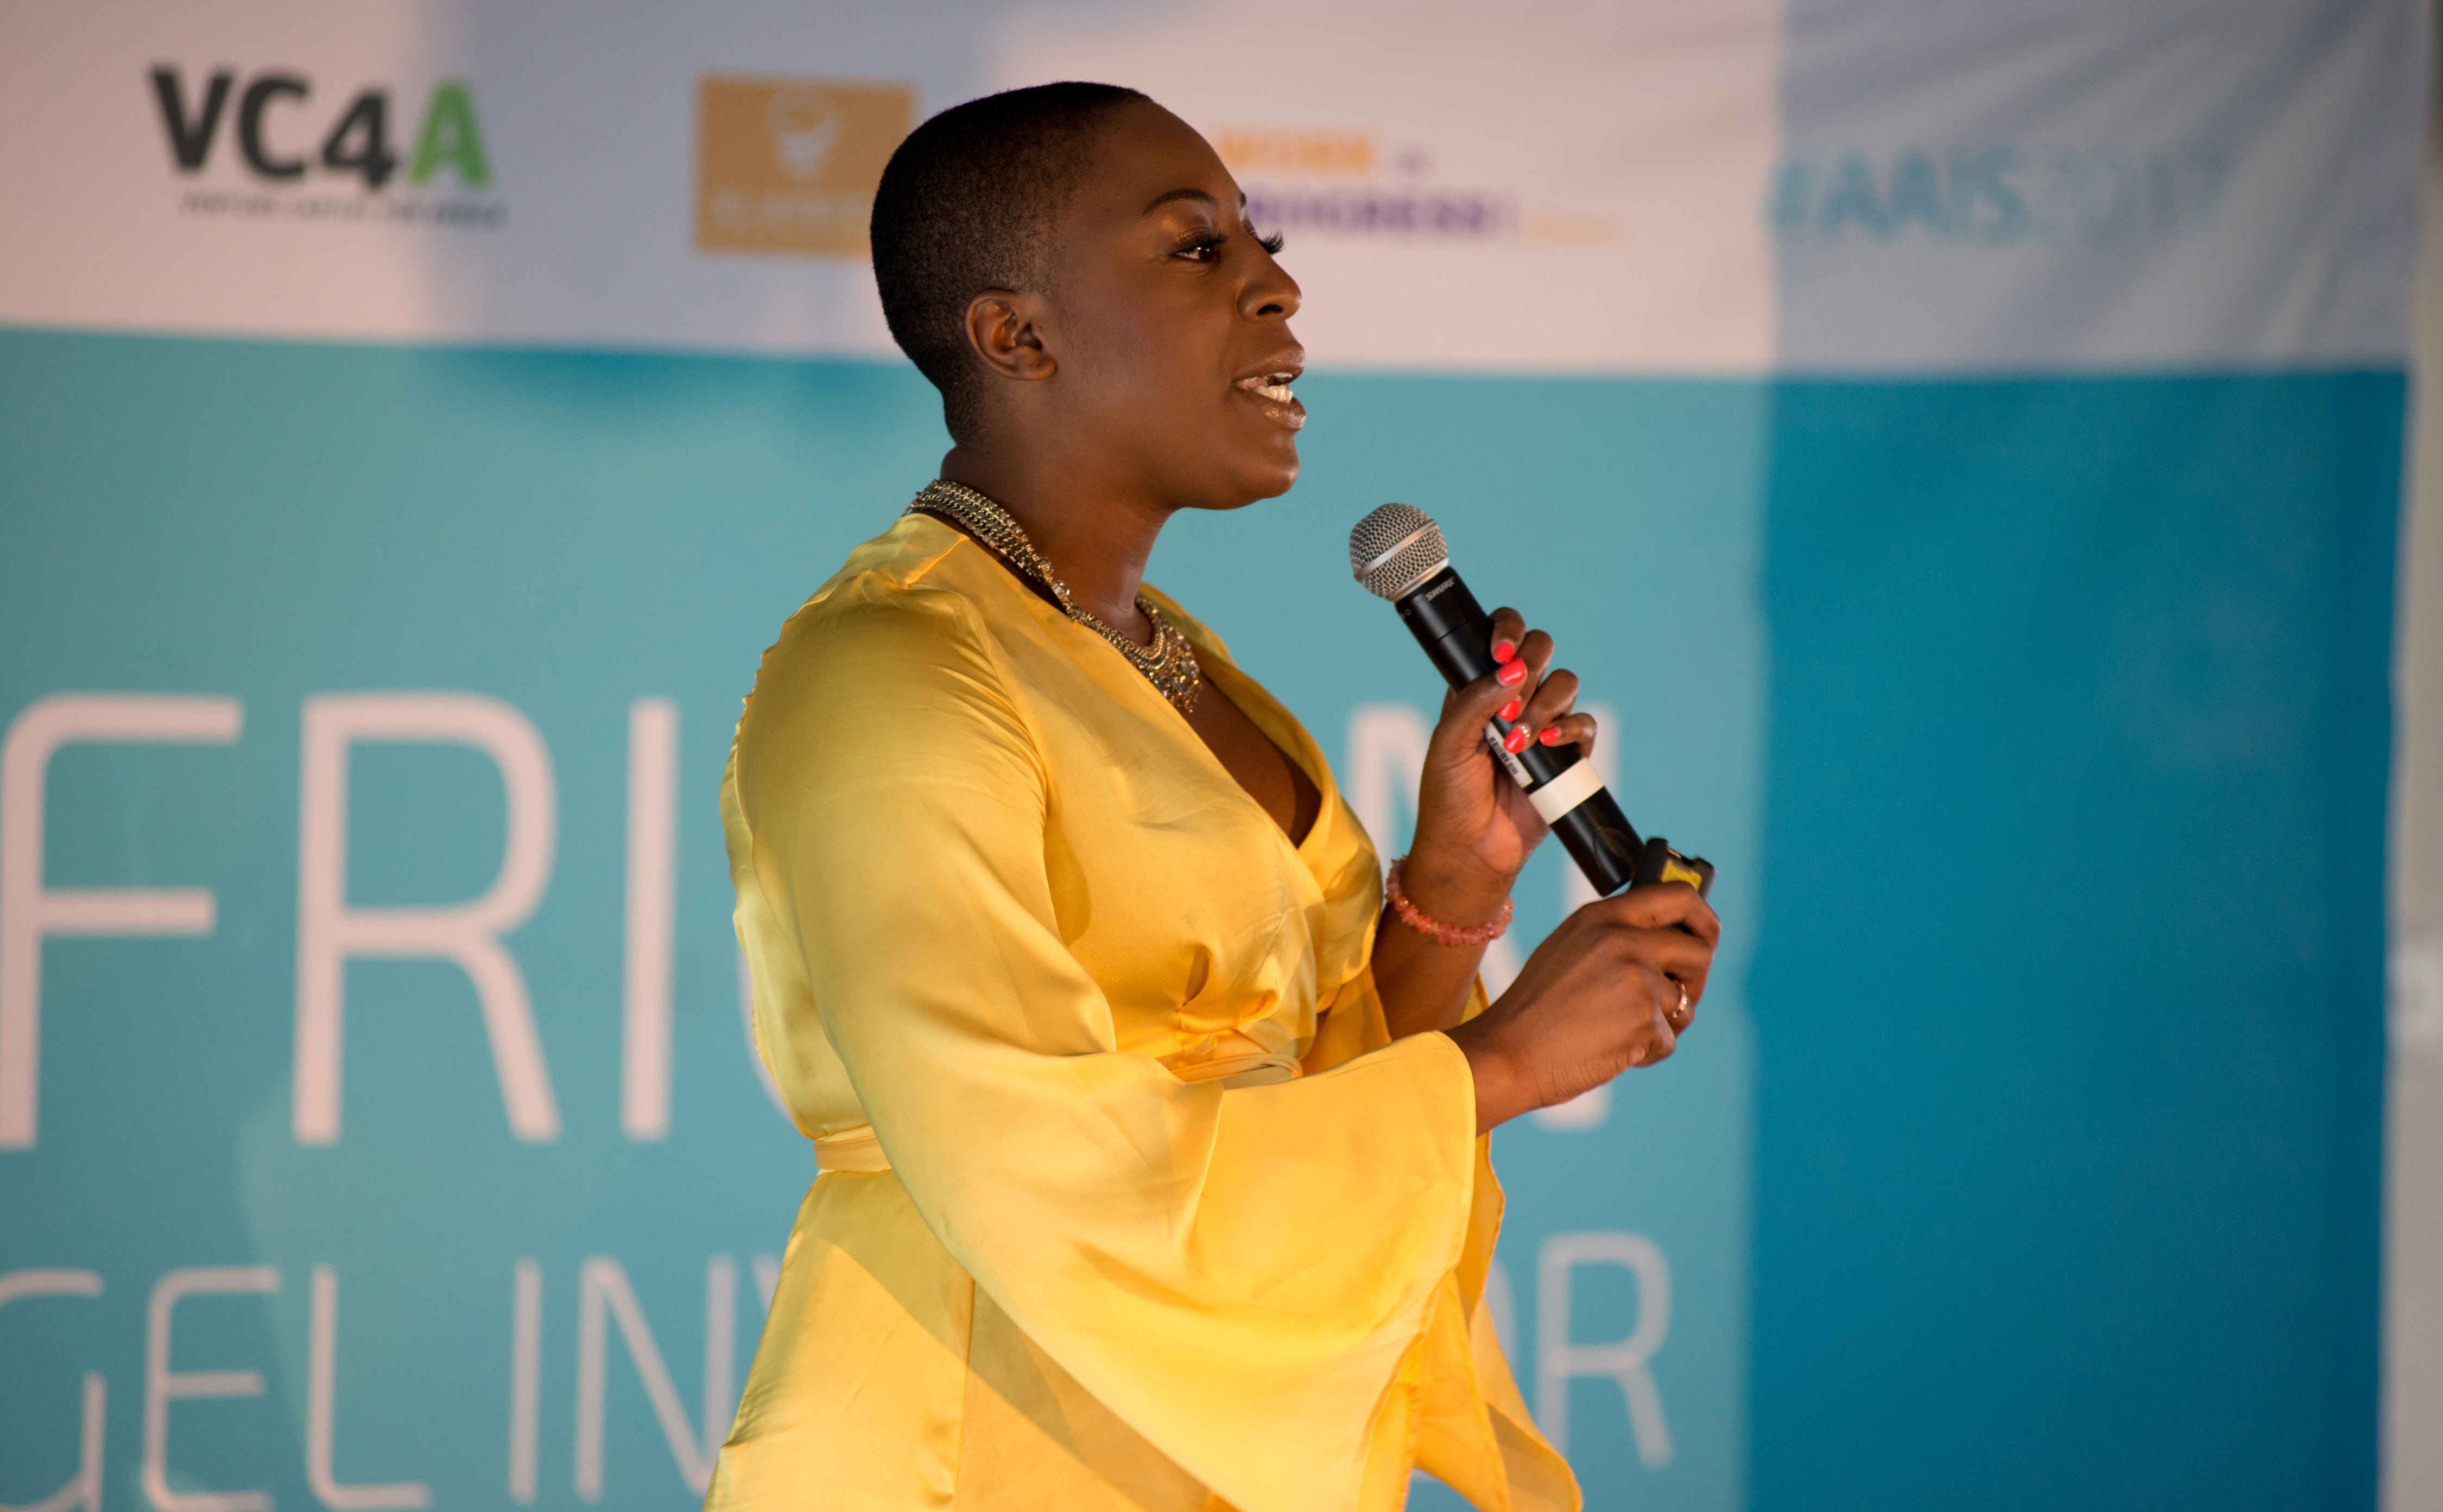 Chika Uwazie Talentbase XL Africa pitch